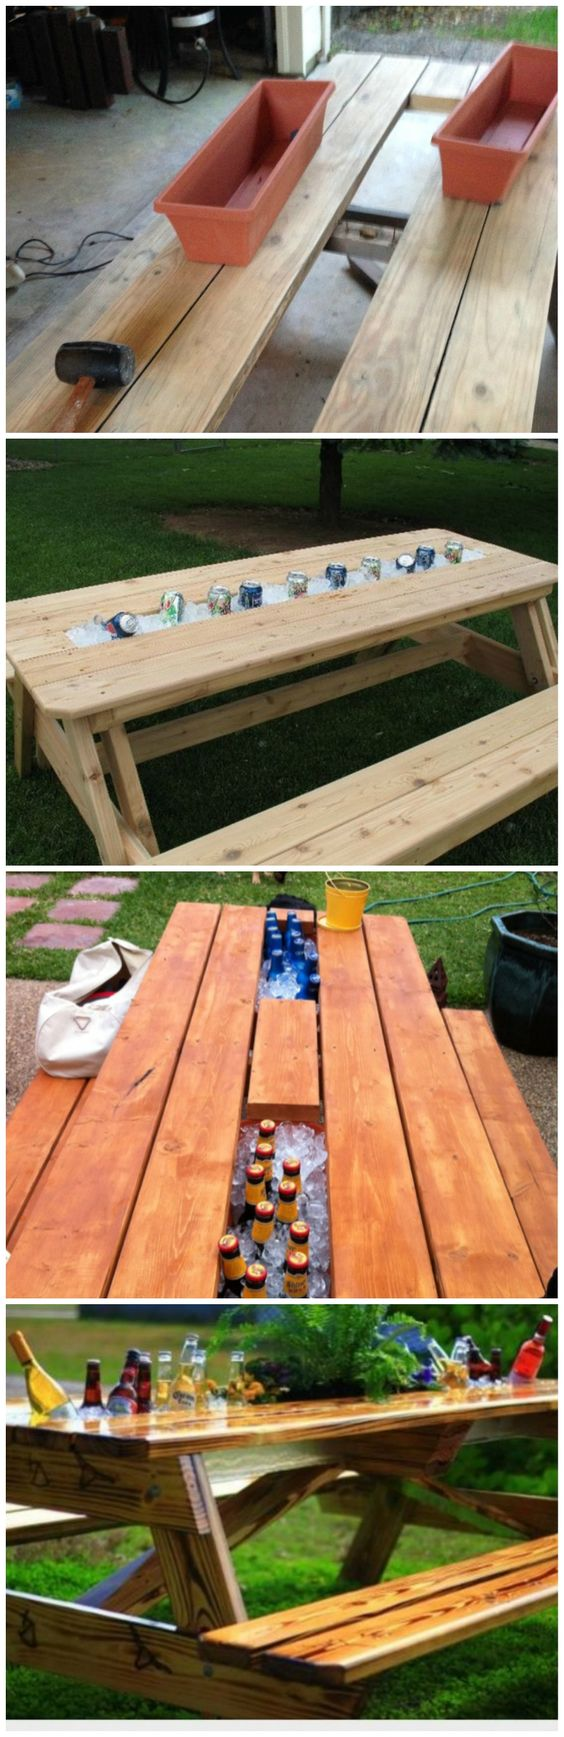 Replace Board Of Picnic Table With Rain Gutter Fill With